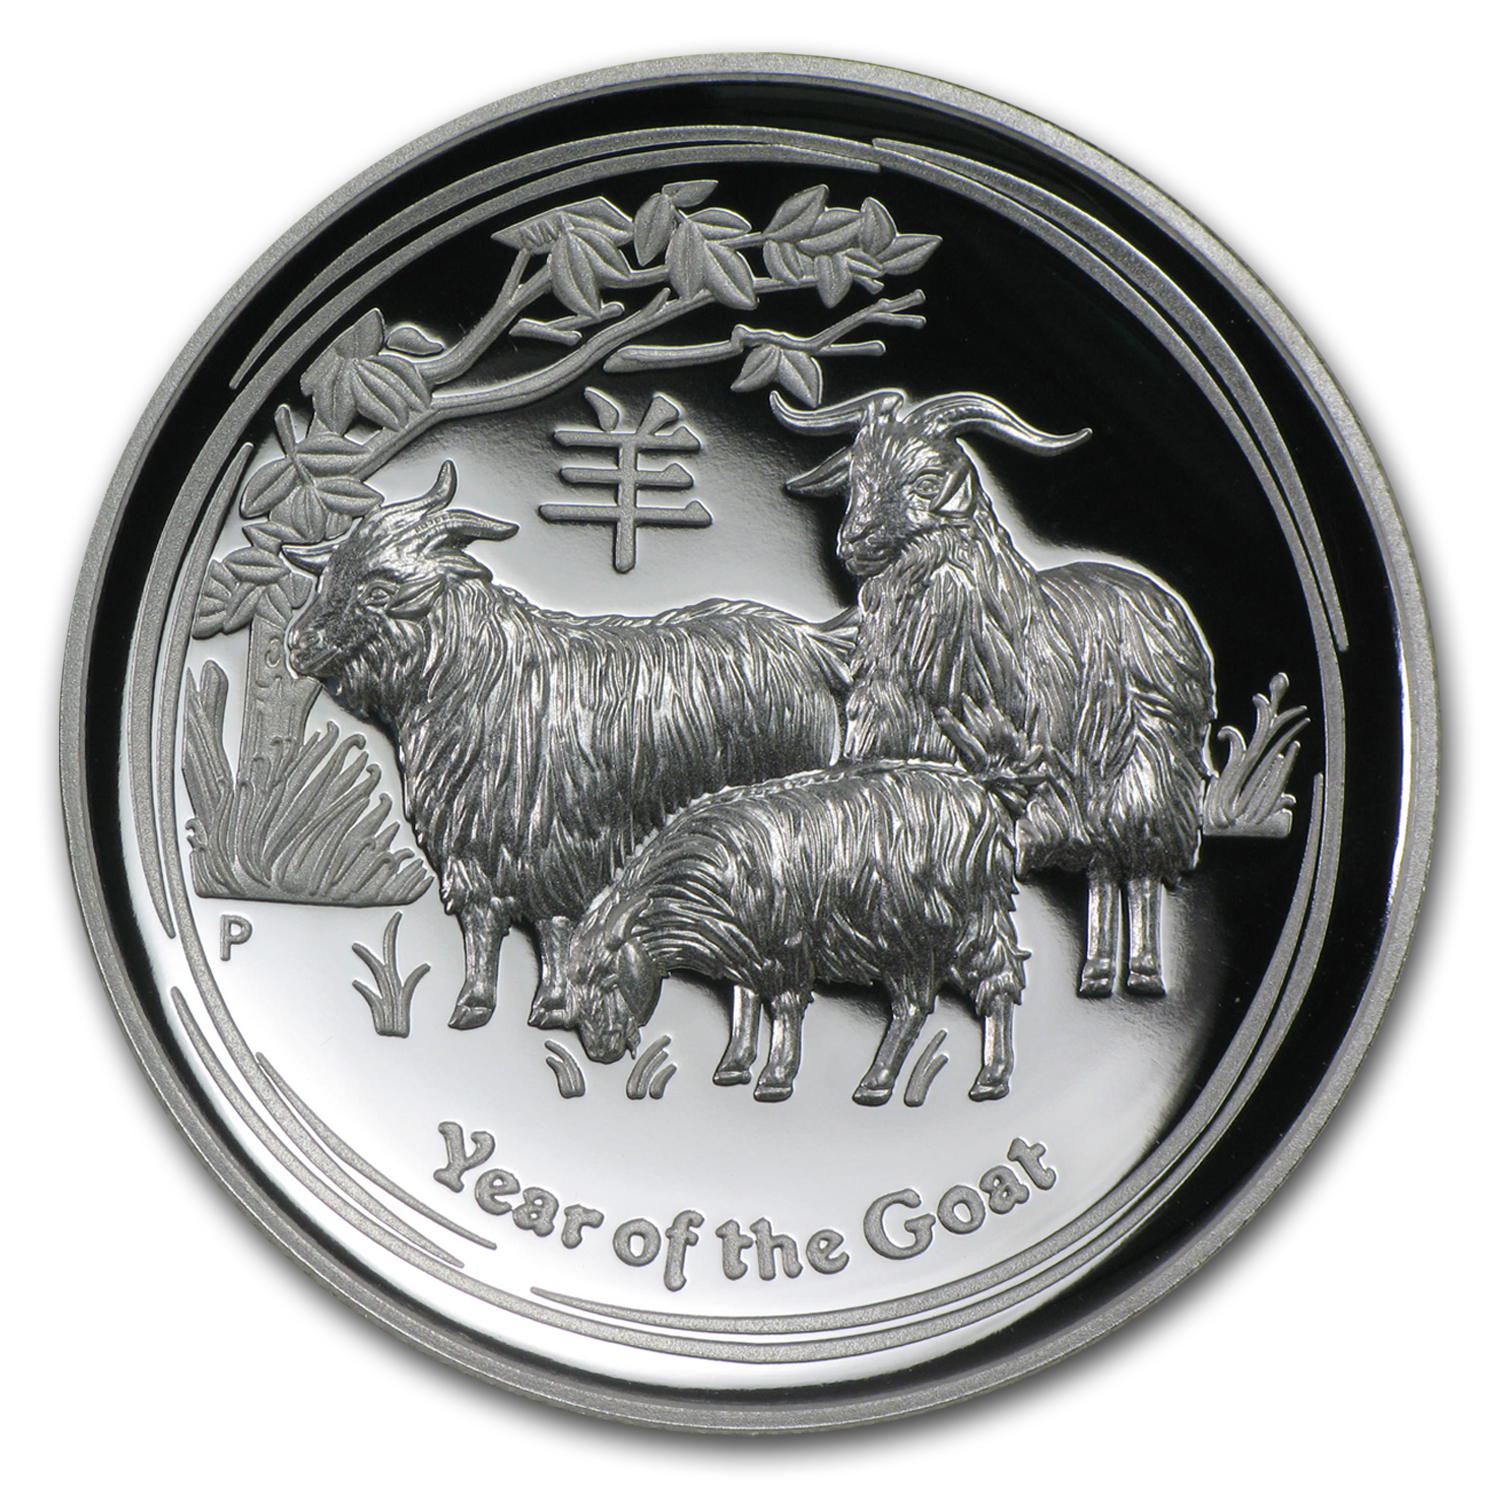 2015 Australia 1 oz Silver Lunar Goat Proof (High Relief)